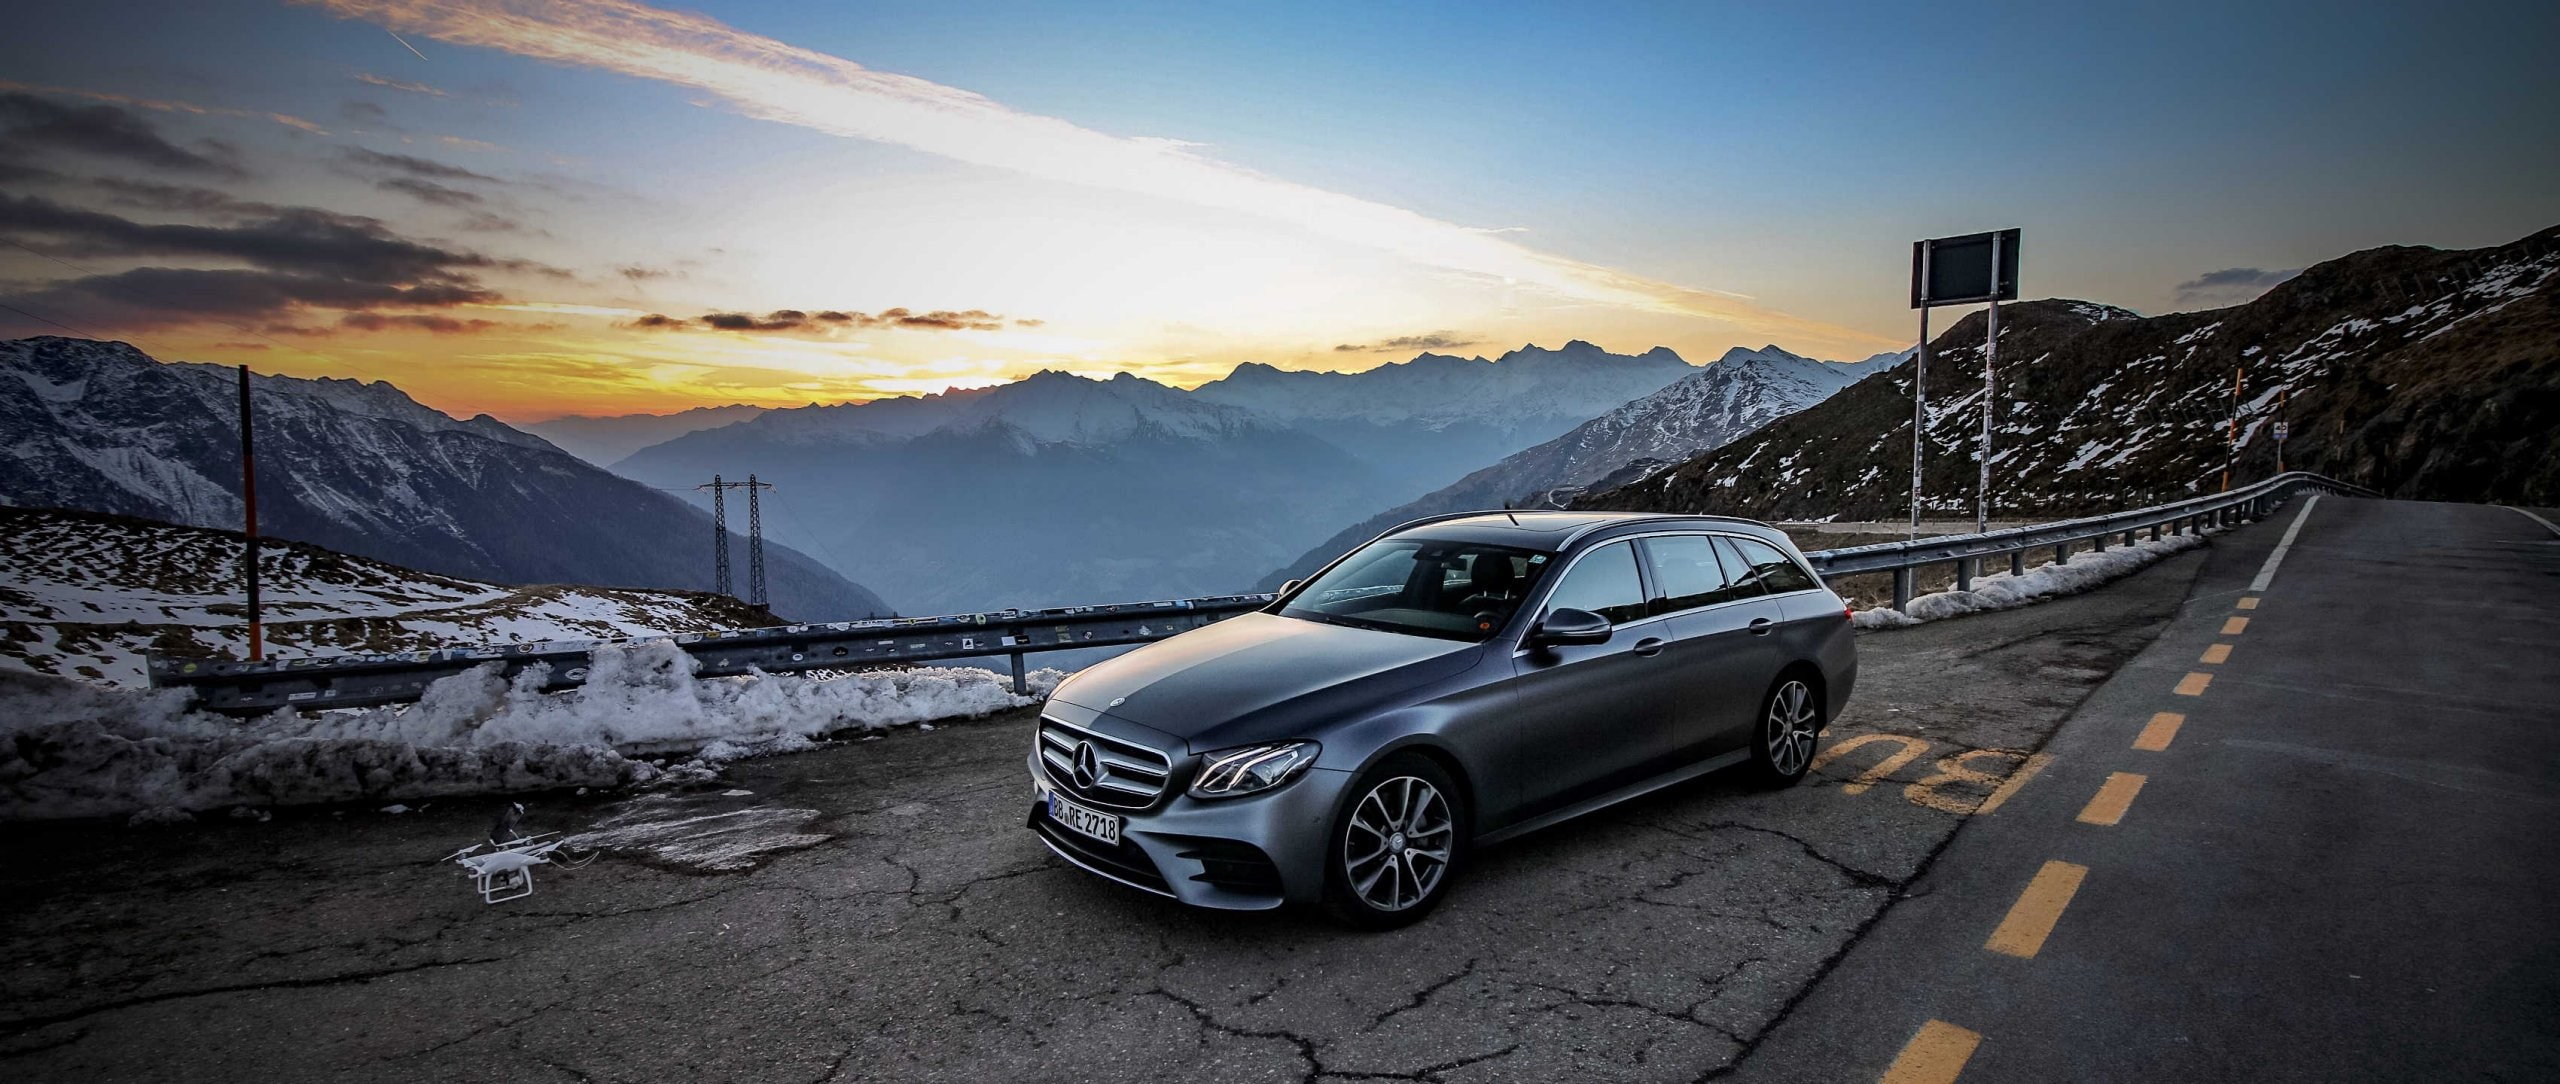 Mercedes-Benz E-Class Estate (S 213): front view on hill.